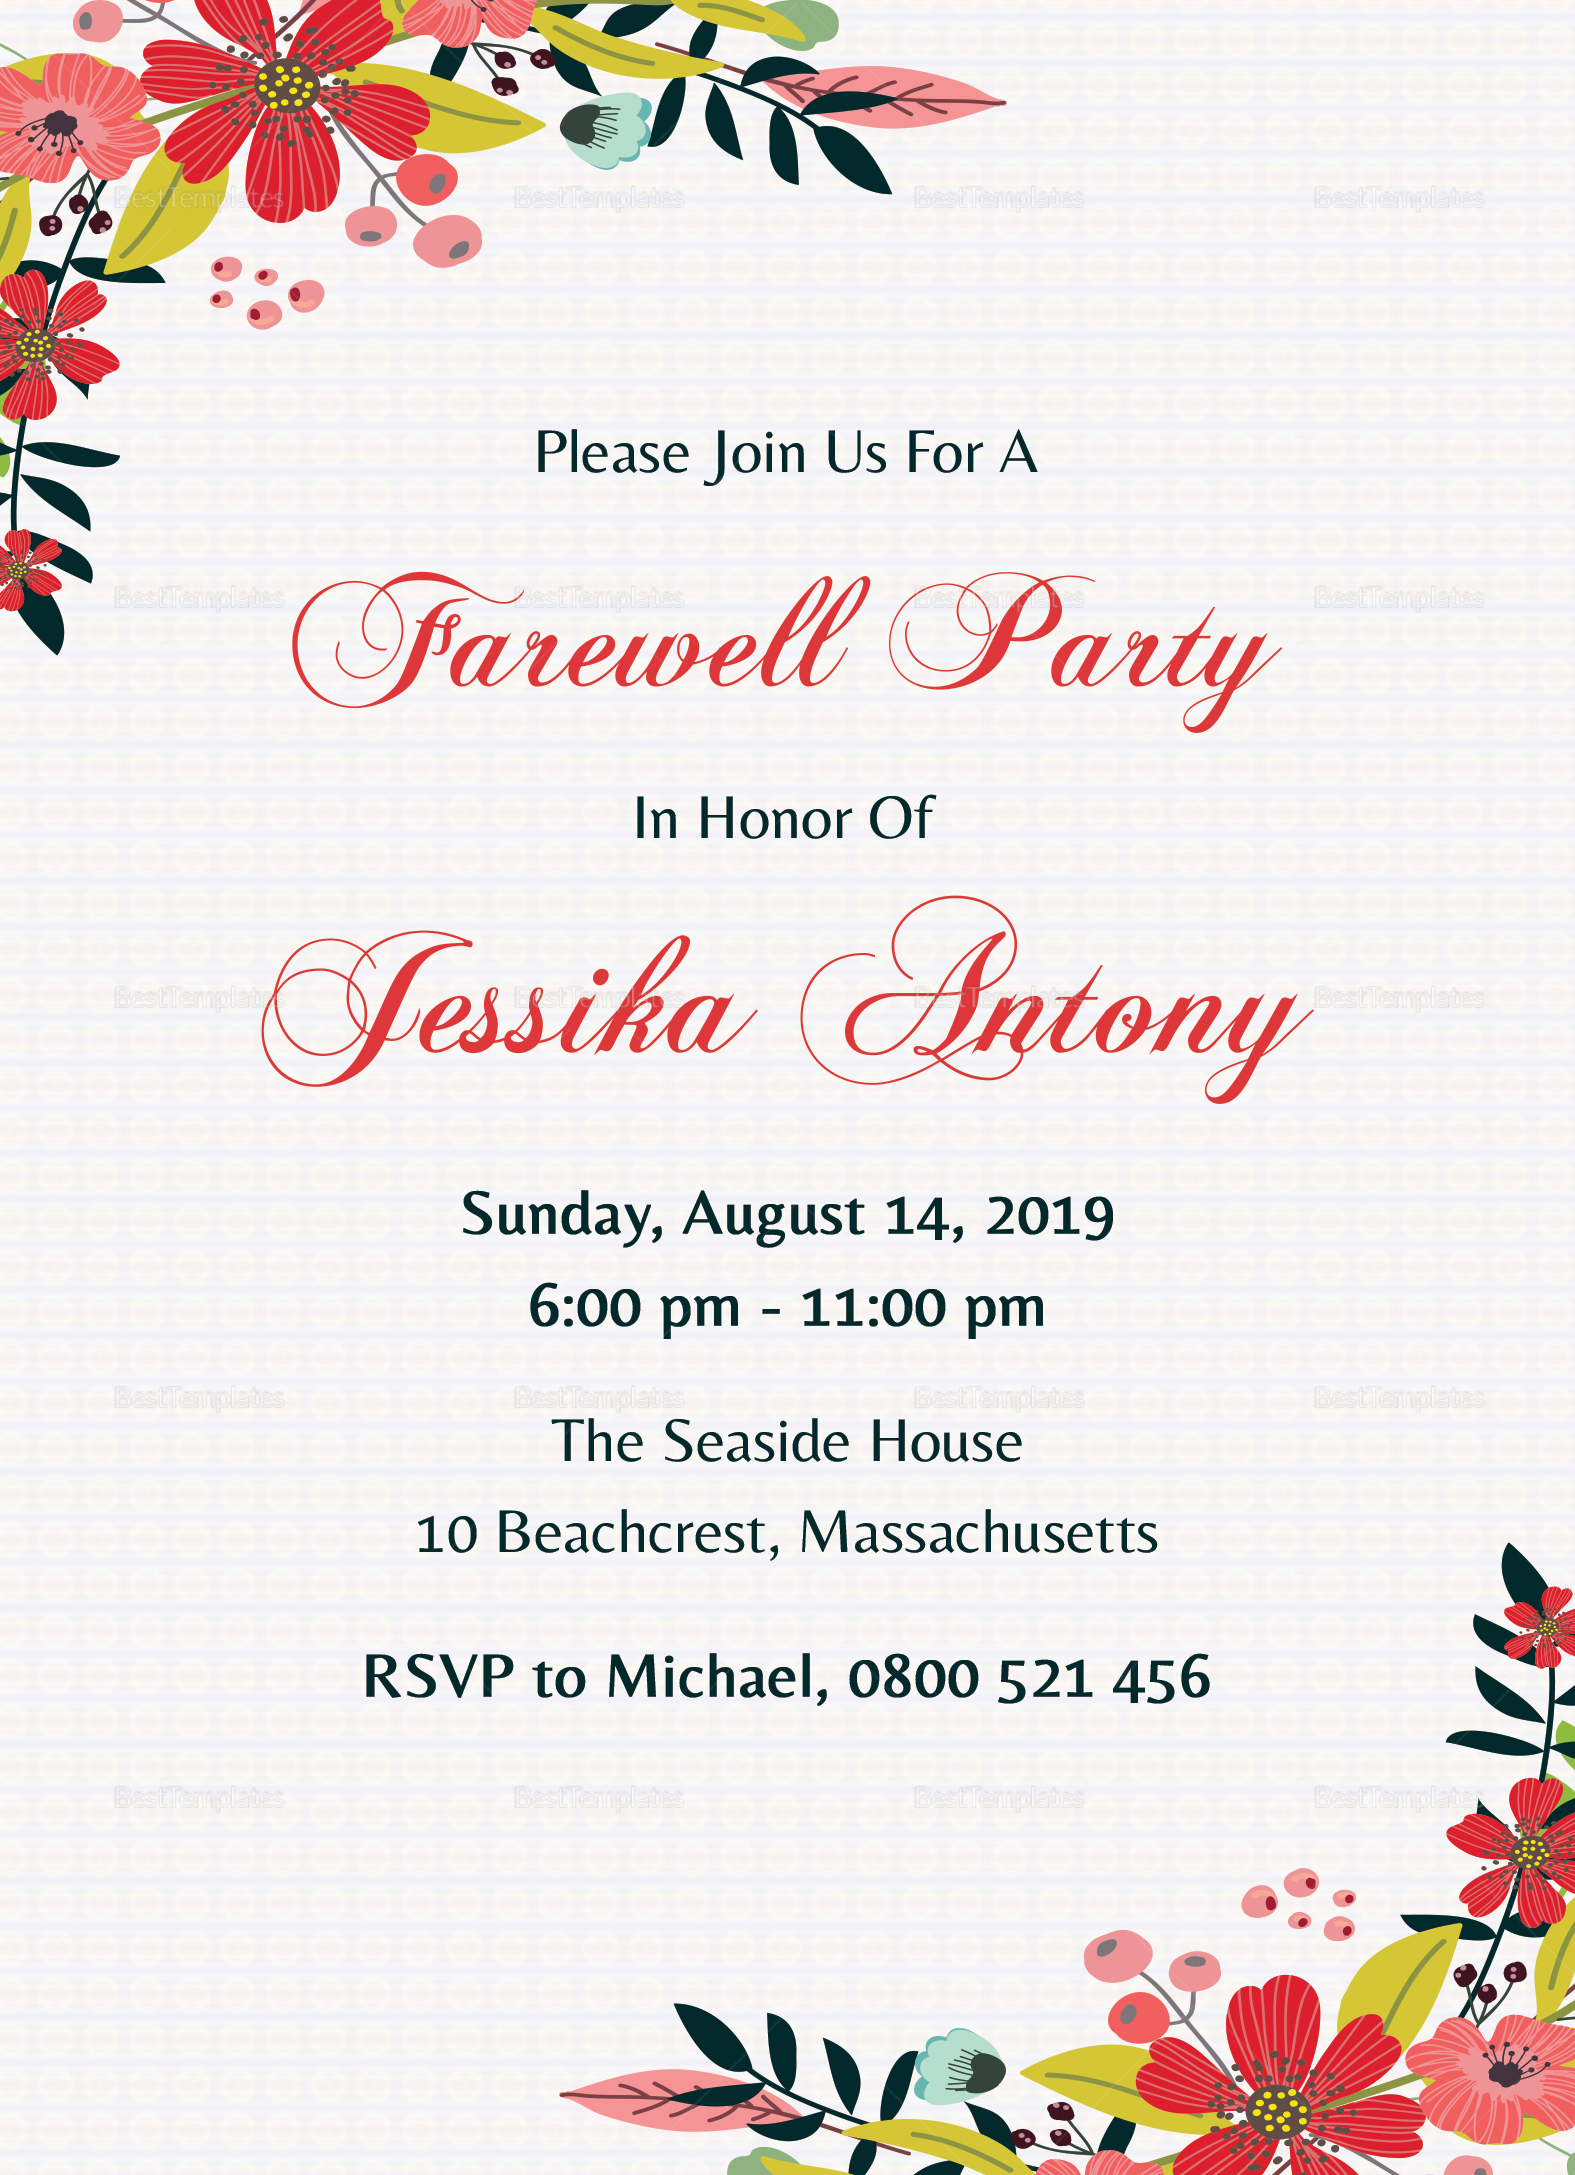 Classic Farewell Party Invitation Design